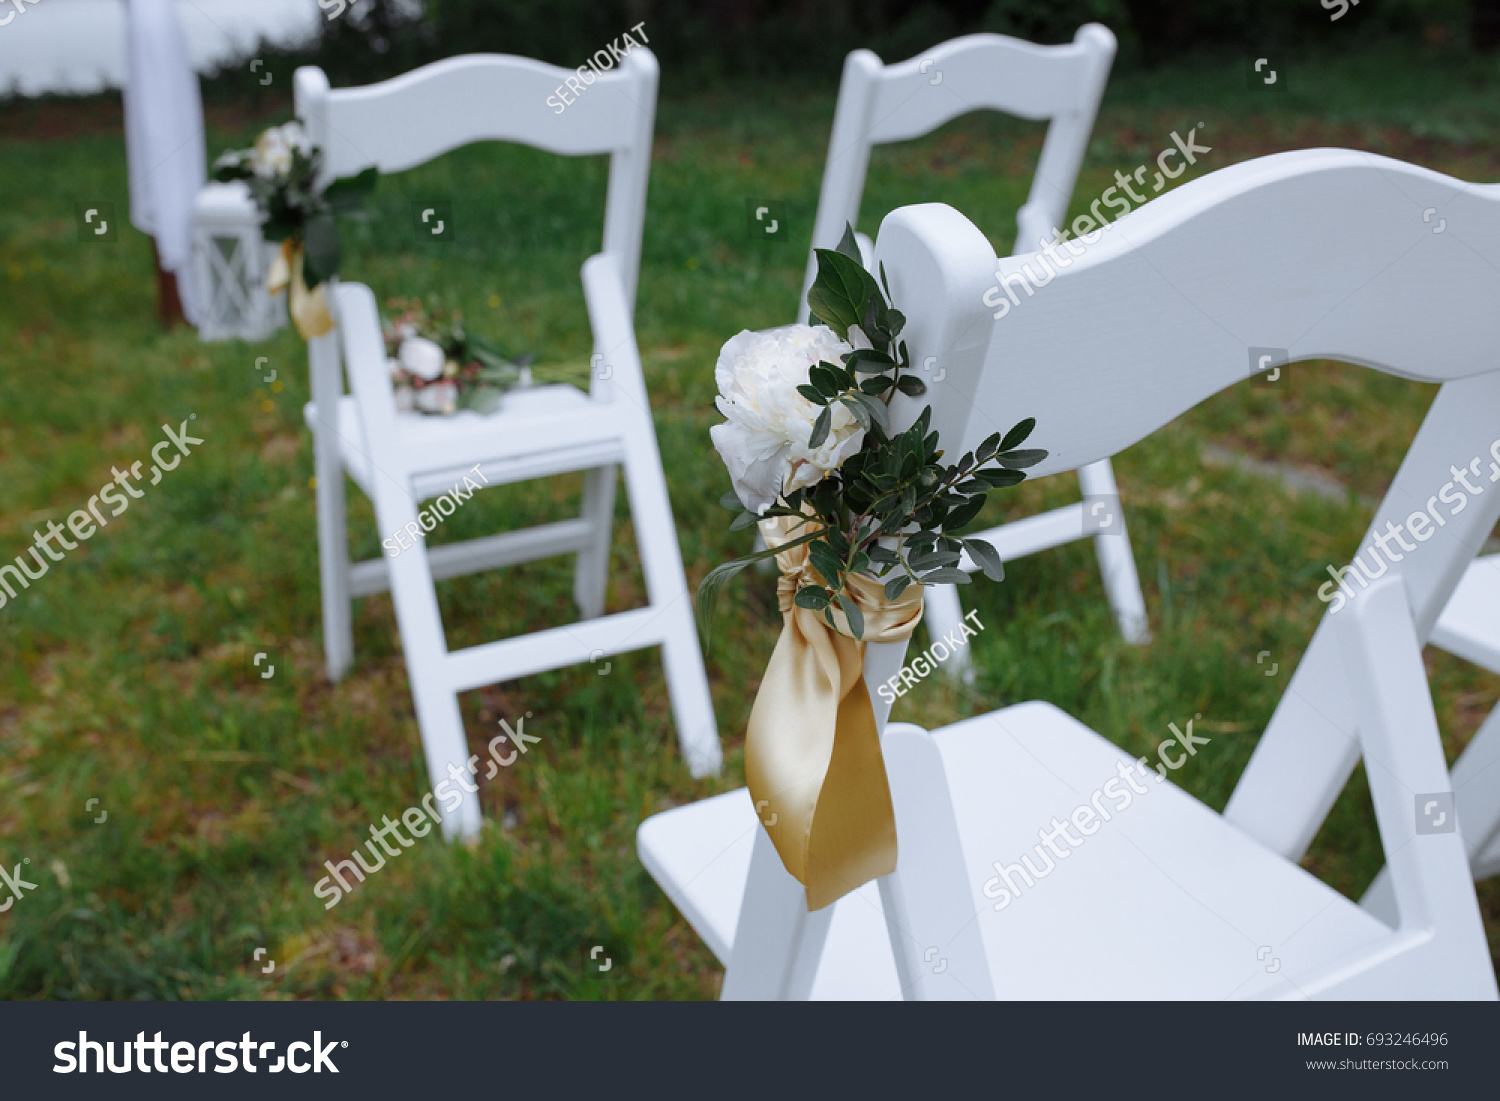 Riginal Wedding Decorations White Chairs Greenery Stock Photo Edit Now 693246496